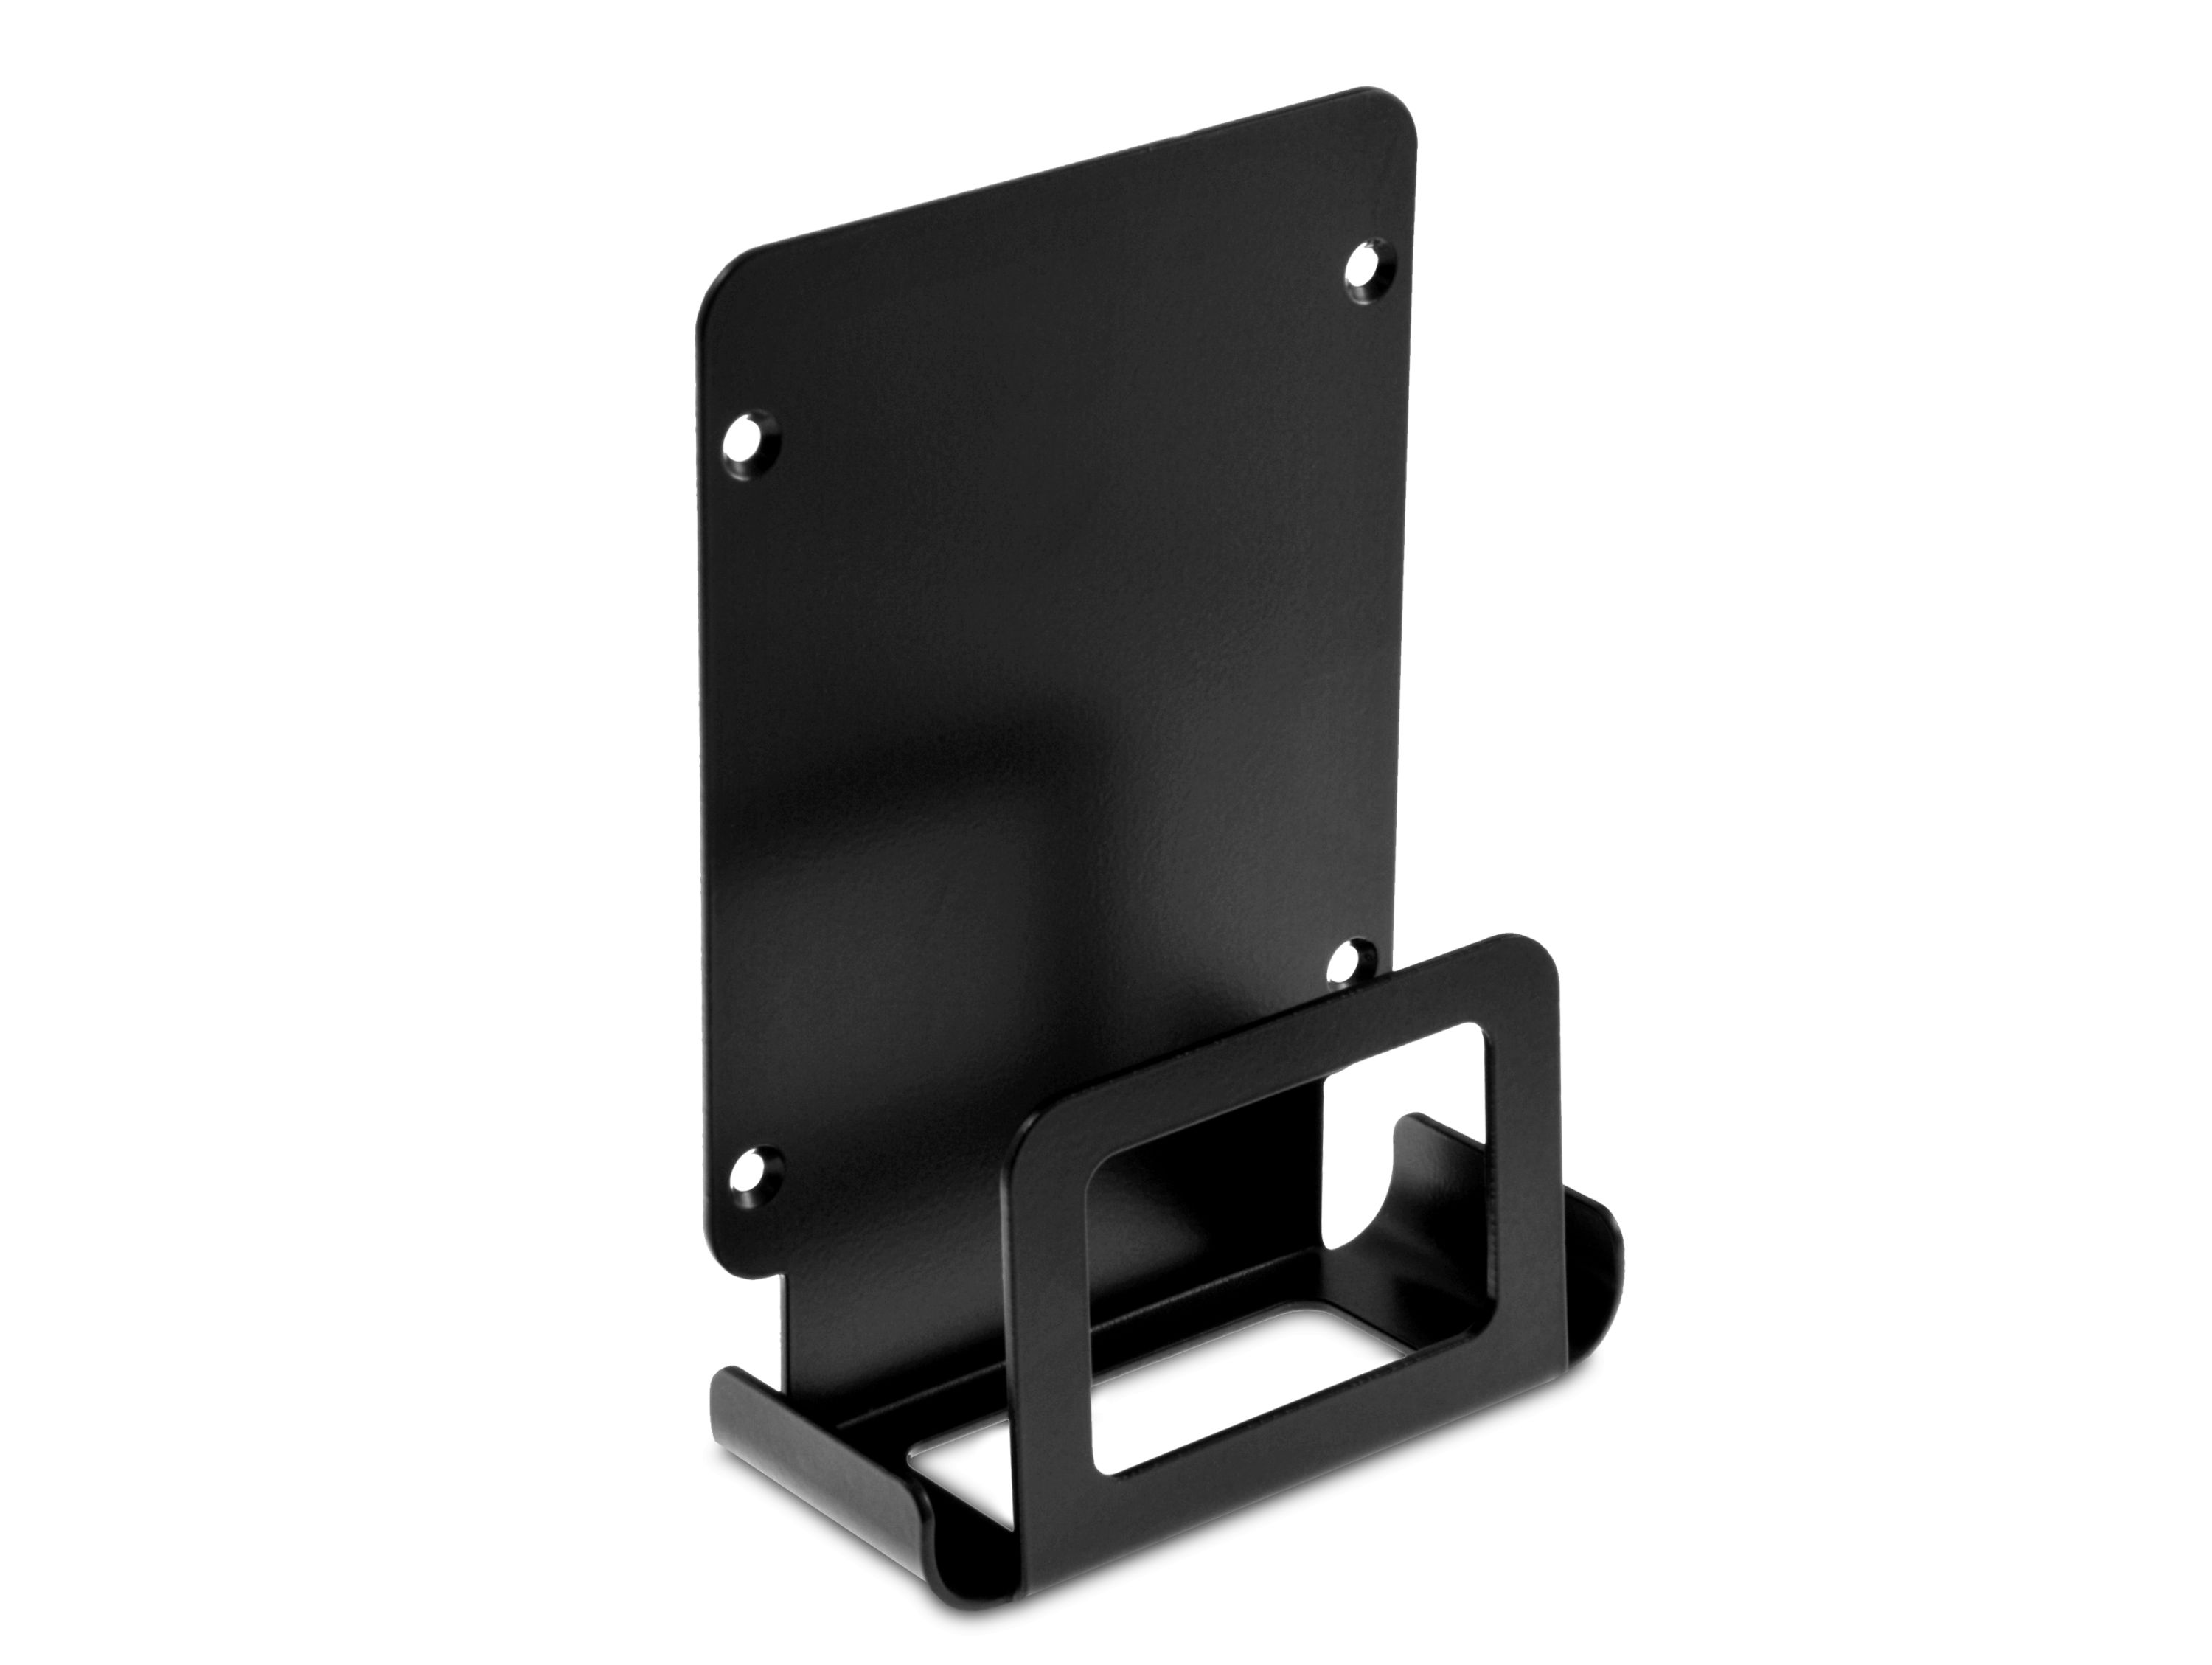 tranquil pc vesa mount bracket wall plate for nuc chassis